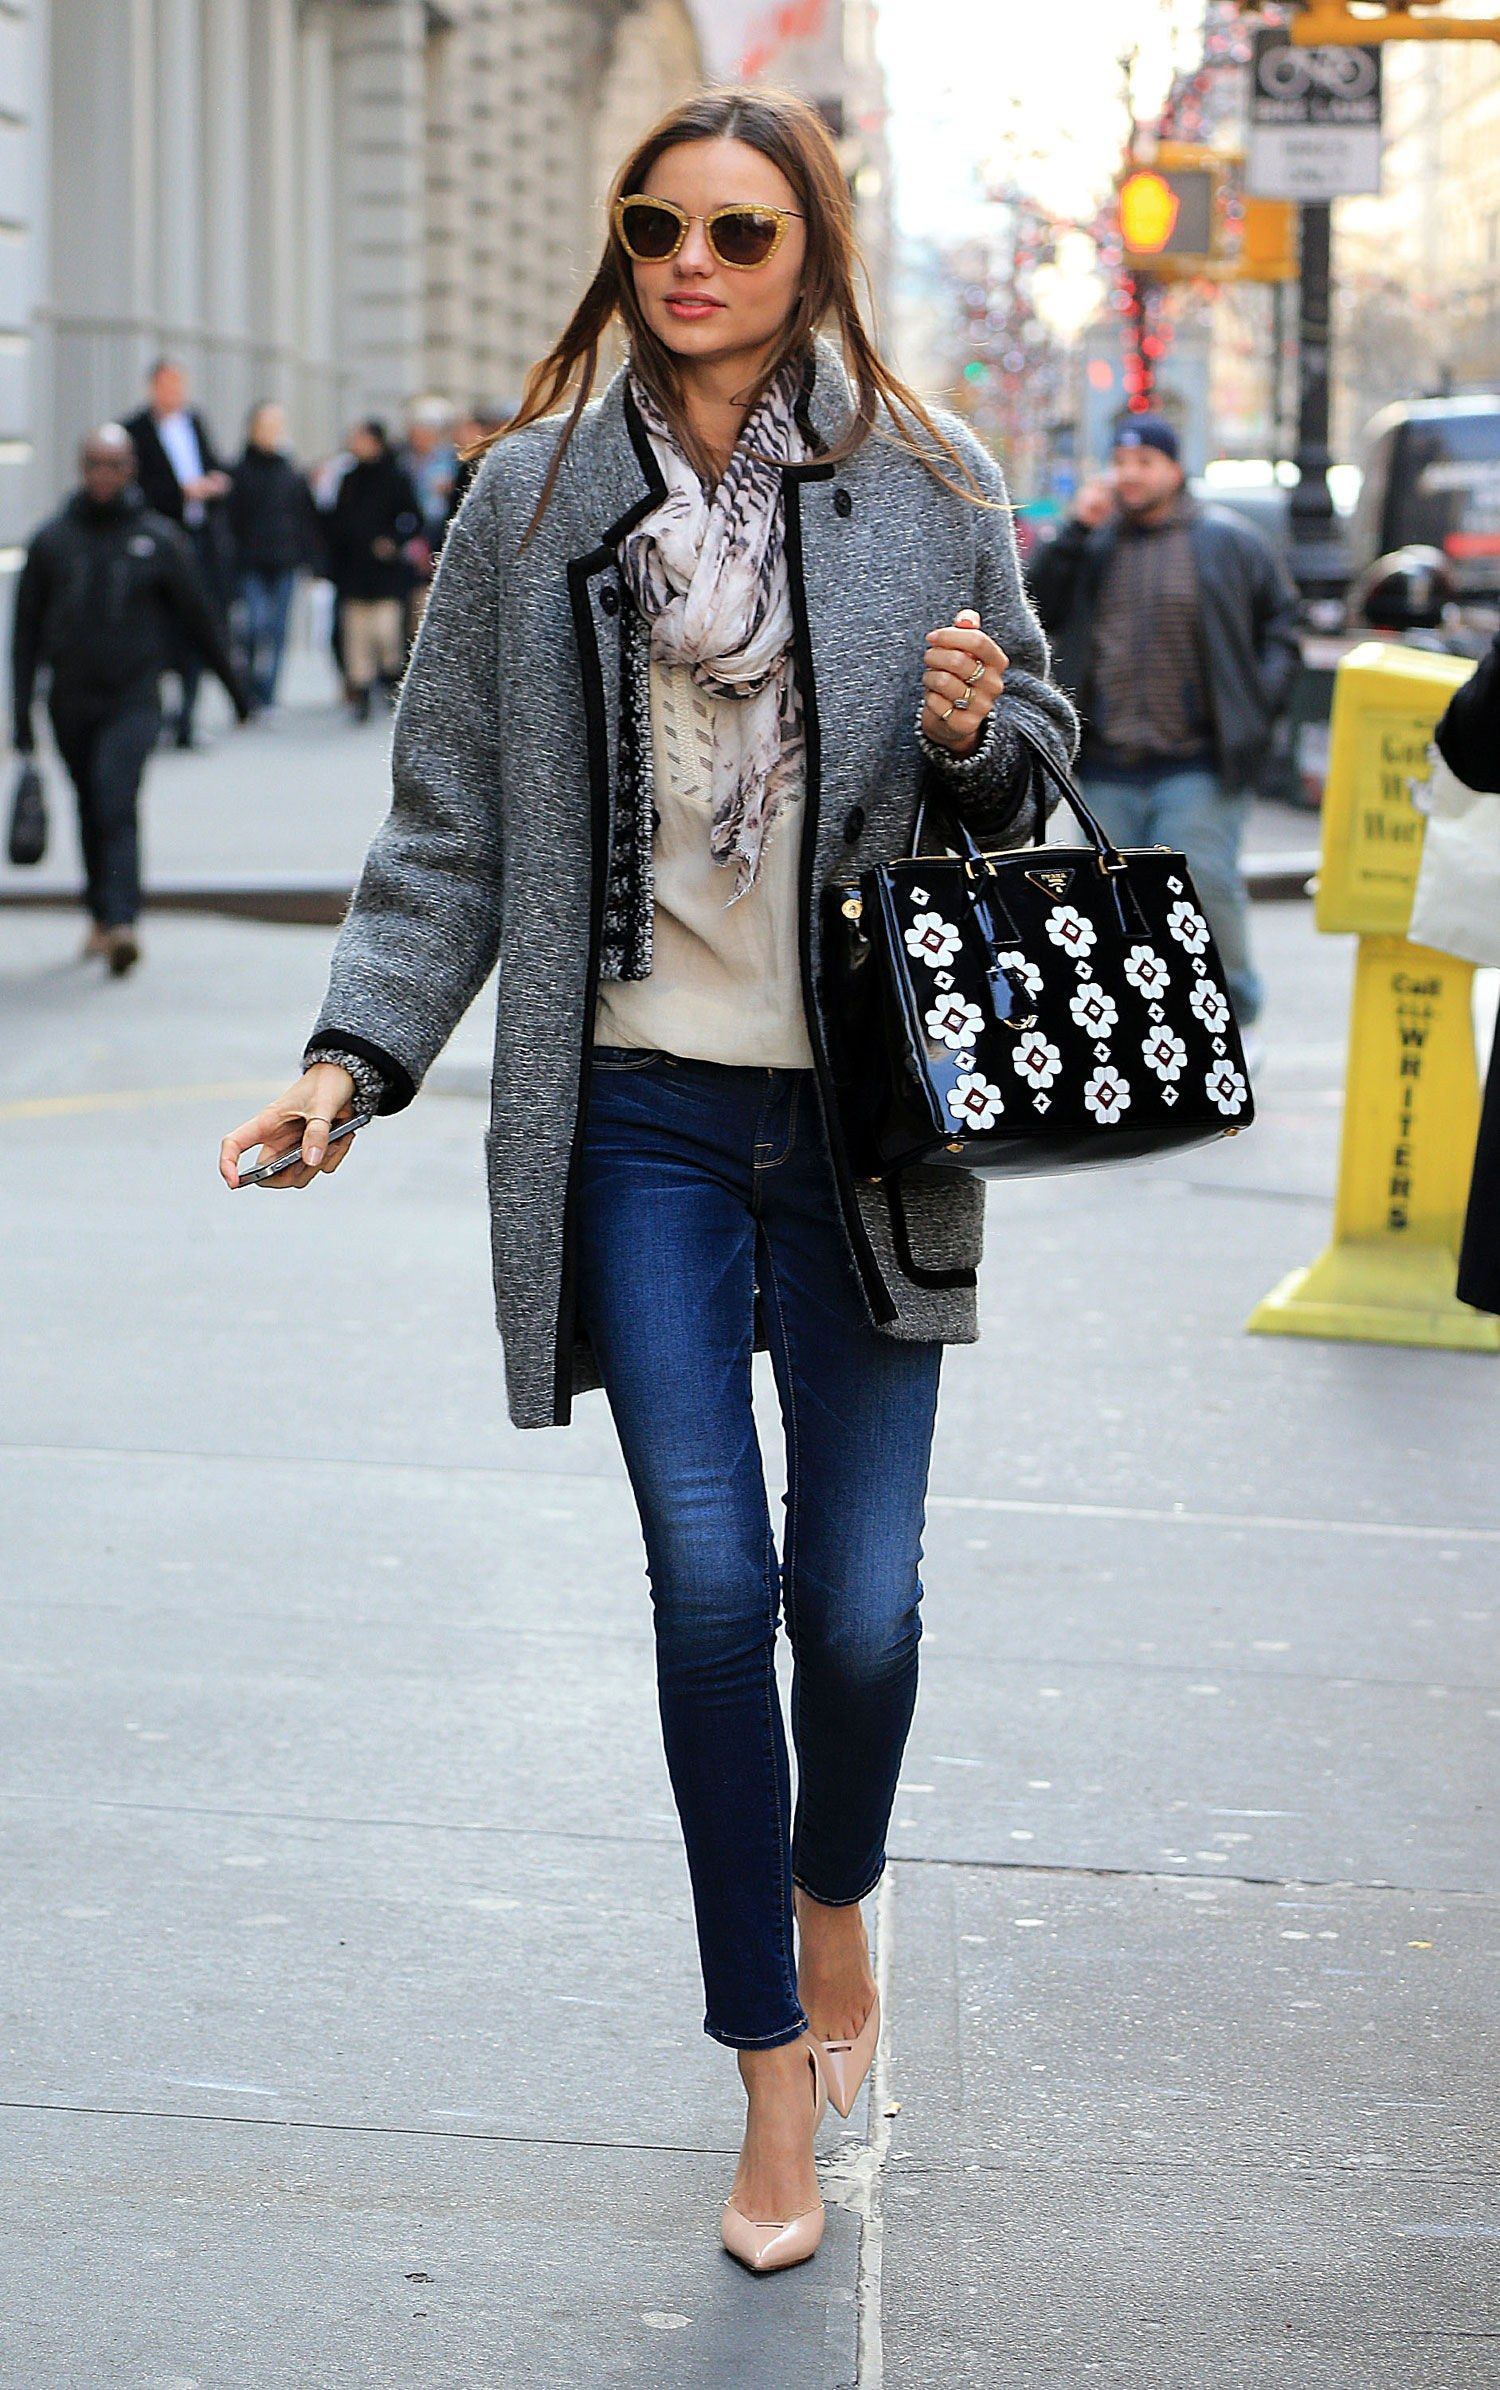 Genius Outfit Ideas To Steal From Street Style Star Miranda Kerr